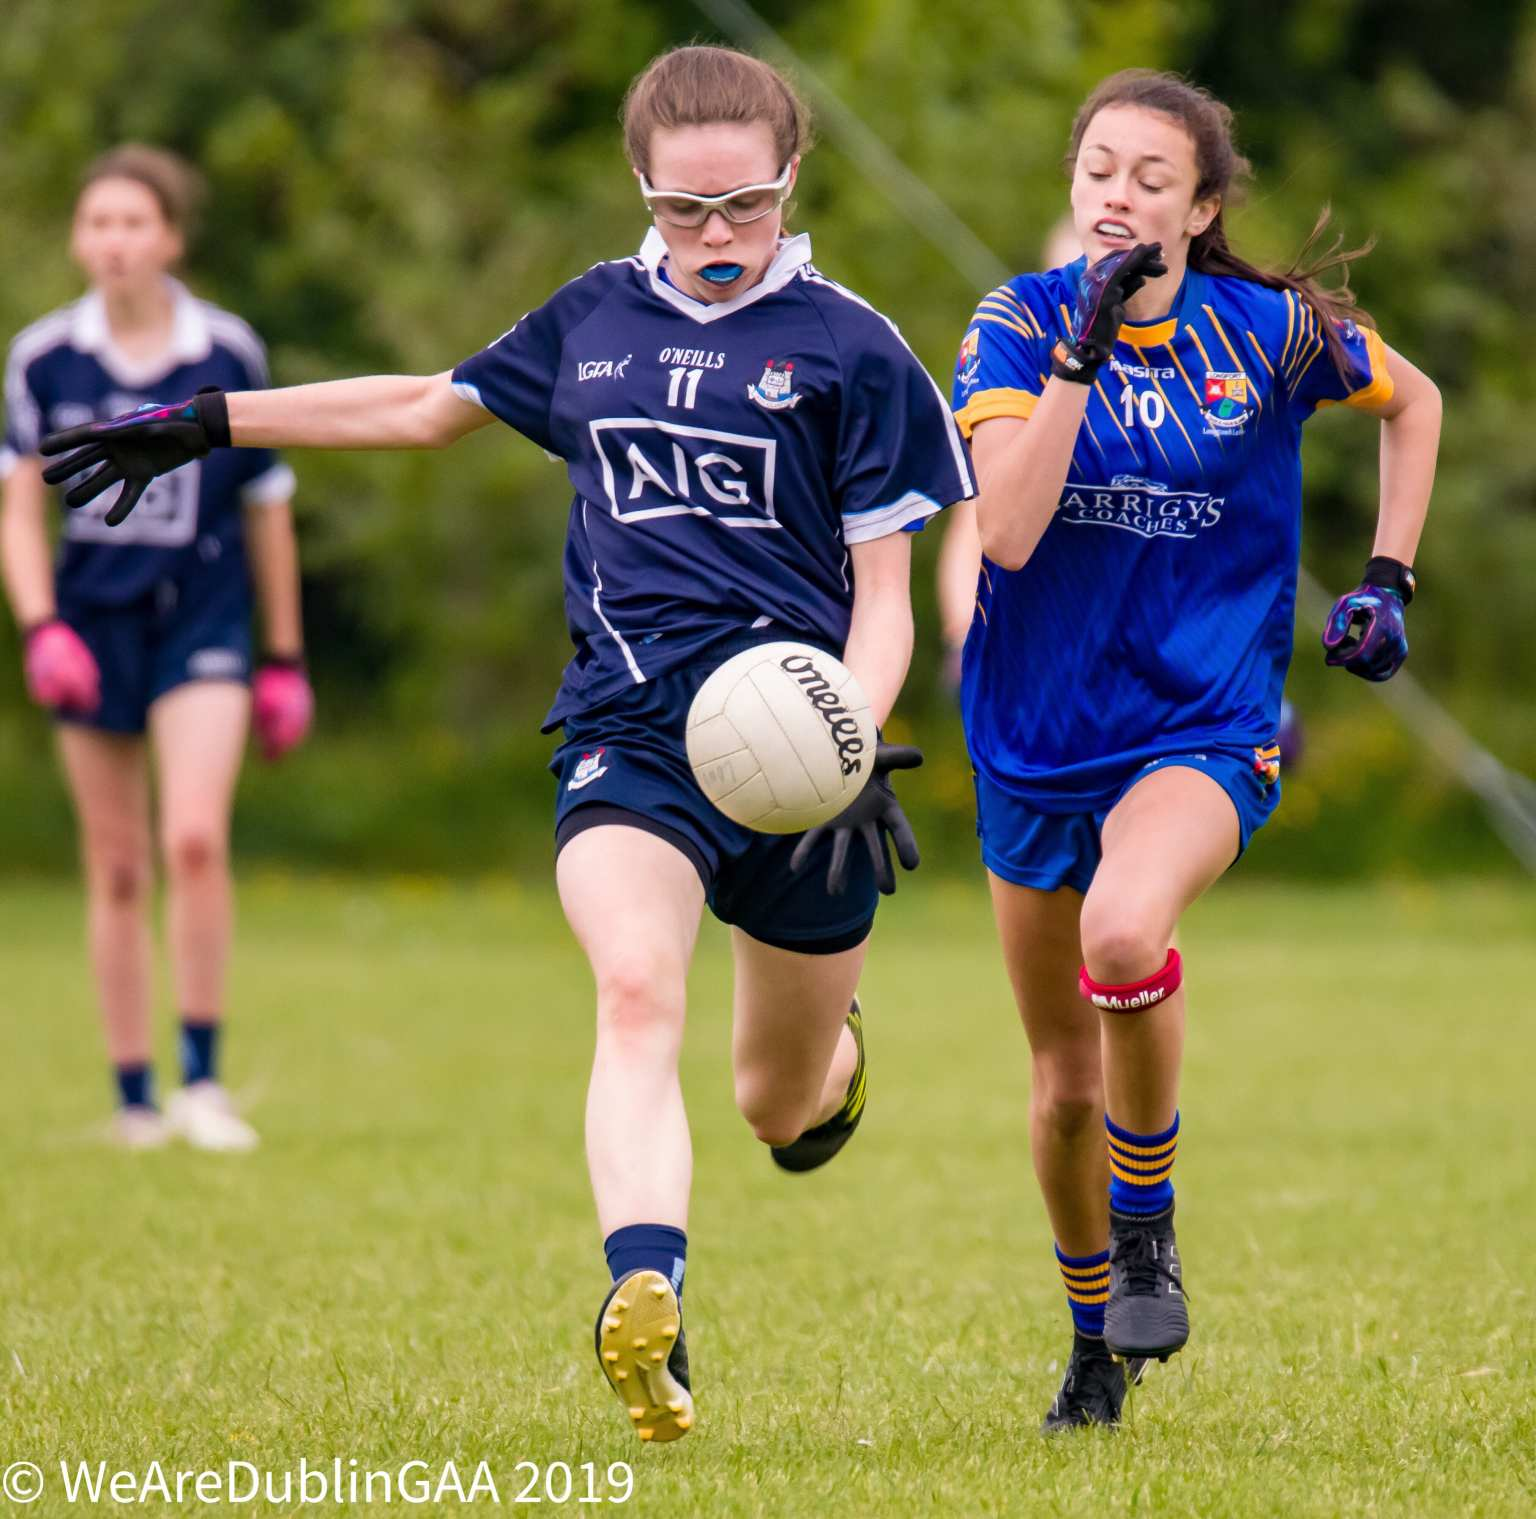 Dublin Ladies footballer in a navy jersey and navy shorts breaks away from a Longford player in a dark blue jersey and dark blue shorts during the U14 All Ireland quarter Final which Longford won with a late goal